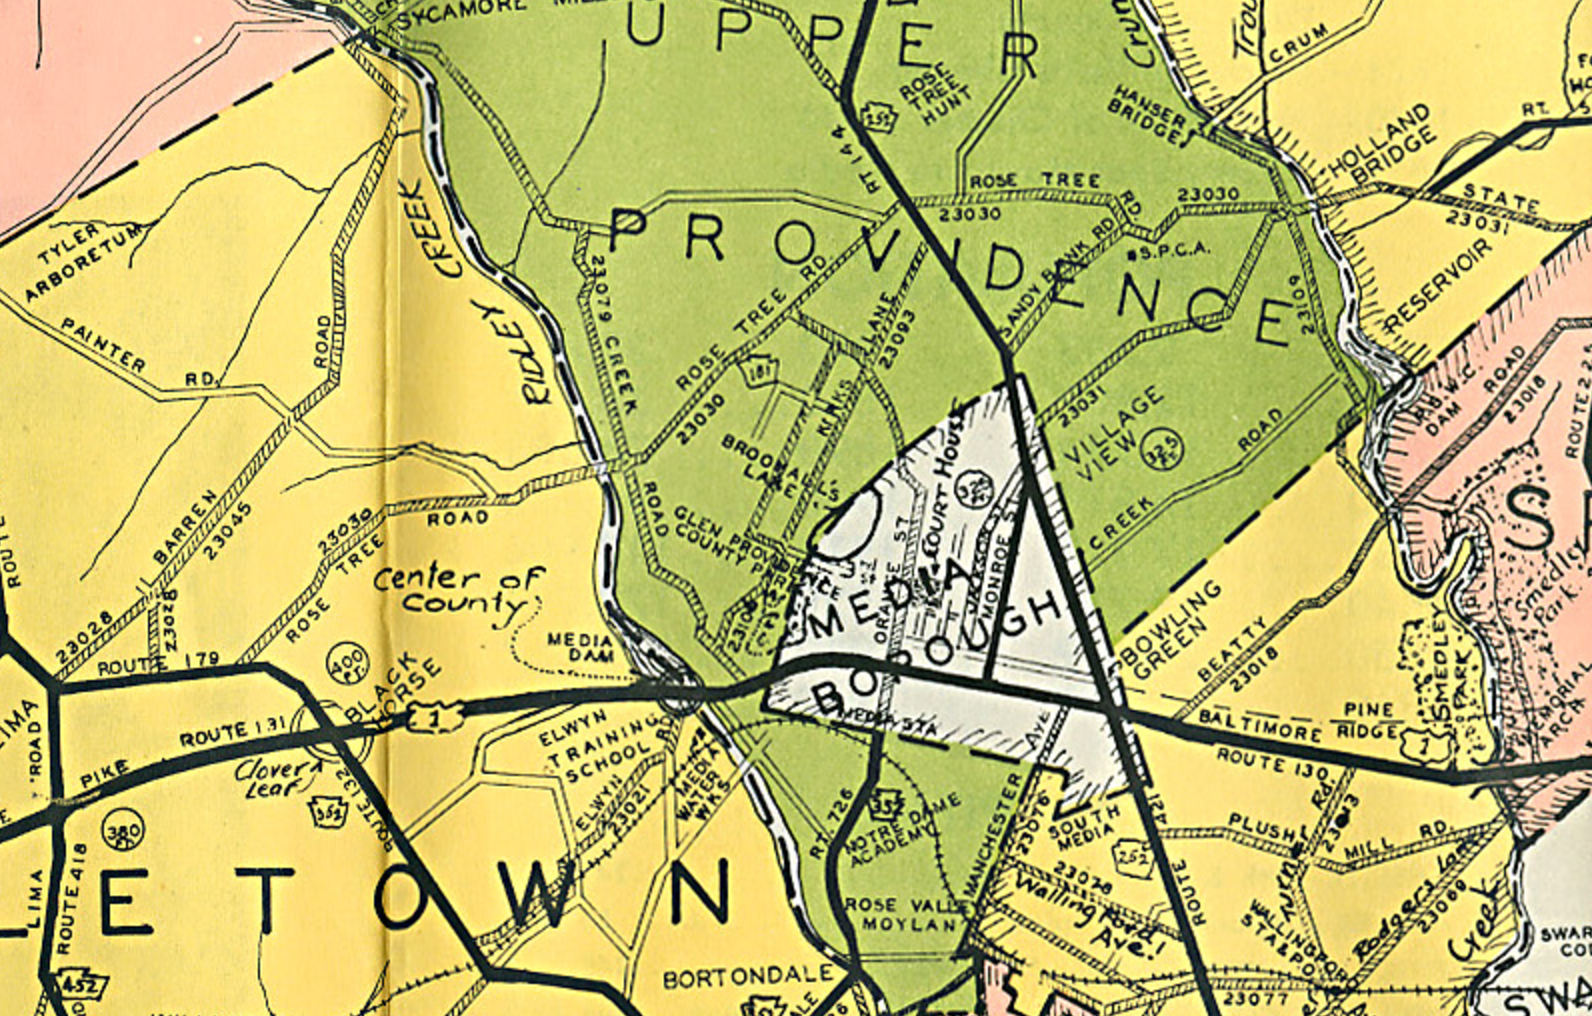 1946 Delaware County Road Map   Friends of Glen Providence Park on lackawanna county, carbon county pa map, adams county, bucks county pa map, cumberland county, baldwin township pa map, schuylkill county, allegheny county, lehigh county pa map, burlington county nj map, amity township pa map, berks county, schuylkill river pa map, montgomery county pa map, media pa map, knox county pa map, philadelphia county, franklin county, pa counties map, jefferson county, delaware county street map, fayette county, bucks county, chester county, lancaster county pa map, villanova university pa map, lancaster county, coal county pa map, washington county, central pa county map, west chester, plymouth township pa map, delaware county ohio map, delaware valley, delaware county township map, york county, montgomery county, washington crossing state park pa map,